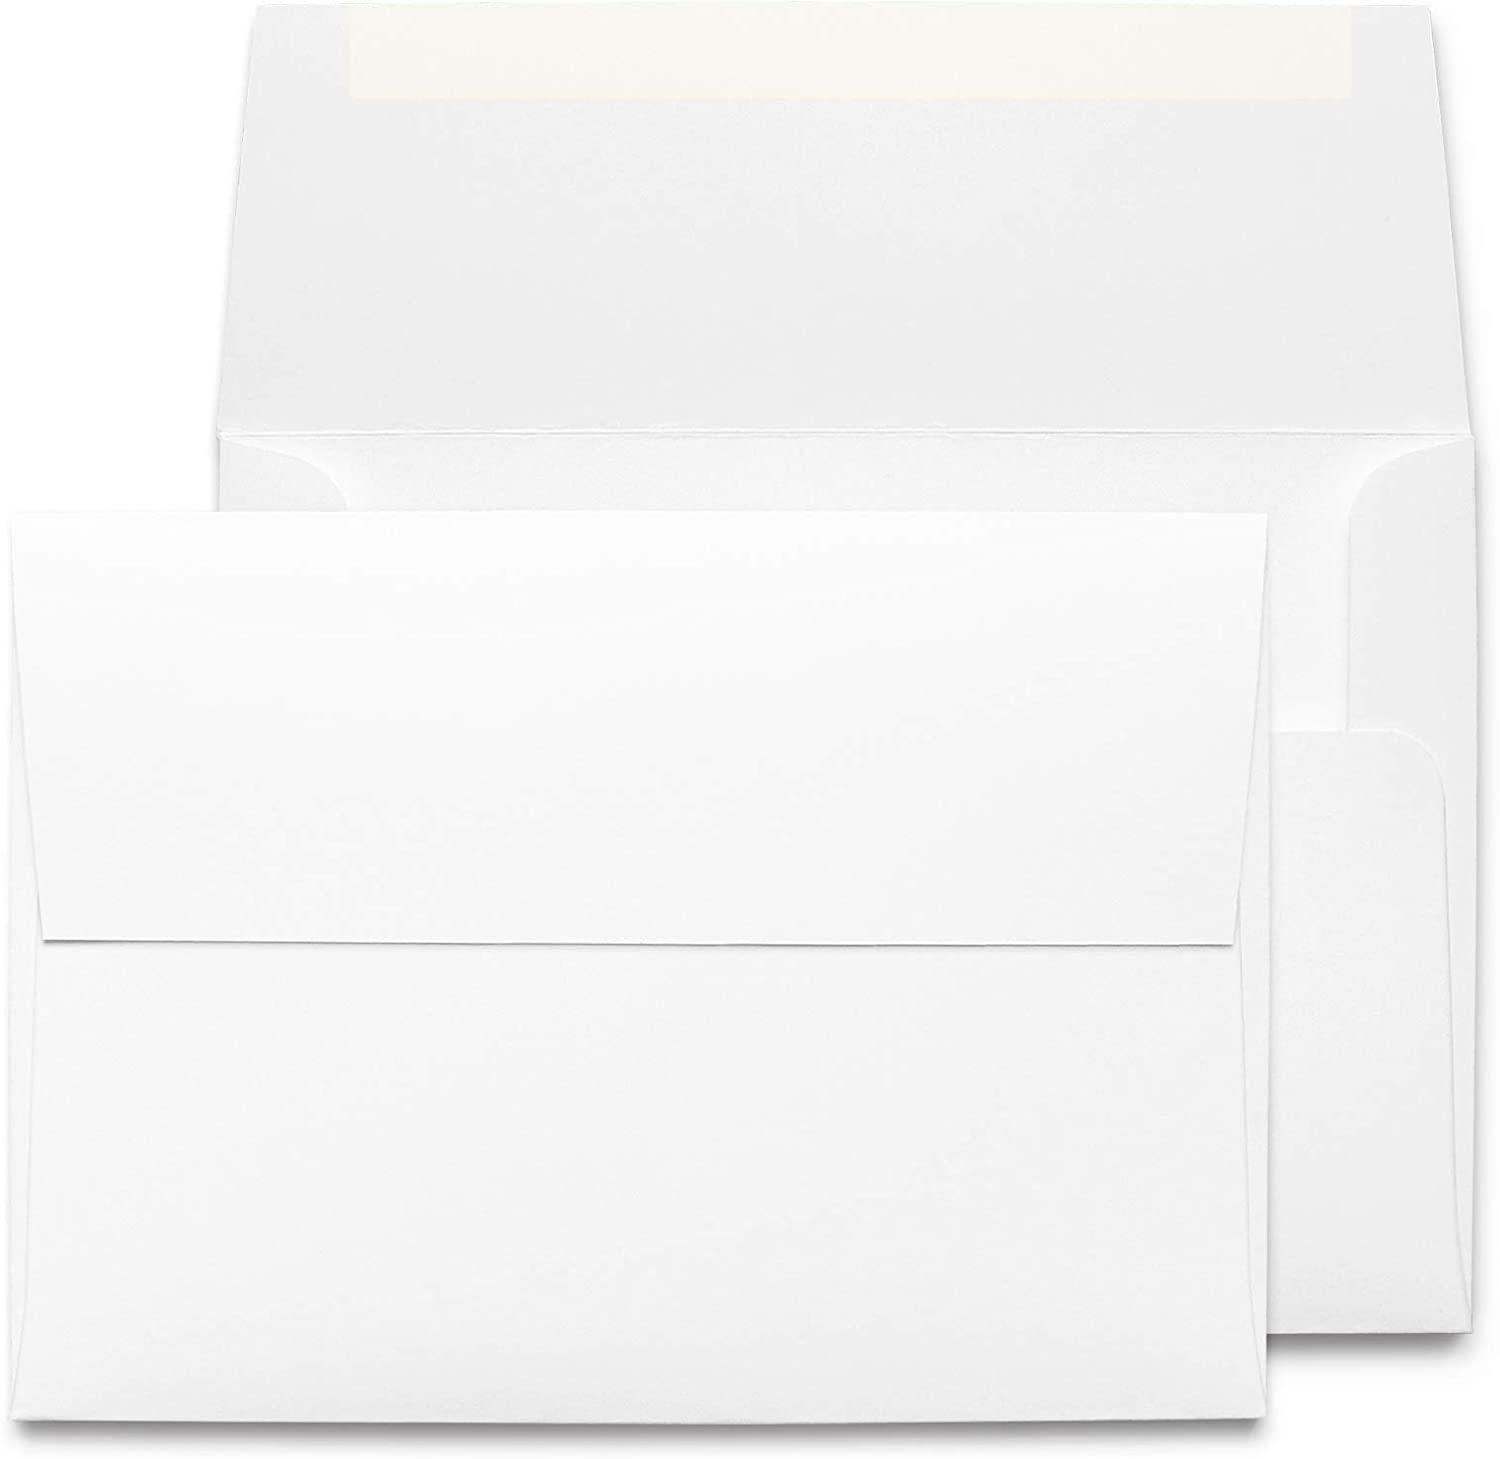 Desktop Publishing Supplies 5x7 Envelopes - 100 Pack - Thick A7 Size (5.25 x 7.25 inch) with Bright White Vellum Finish - for Mailing Greeting Cards, Invitations, Postcards, Photos, Announcements